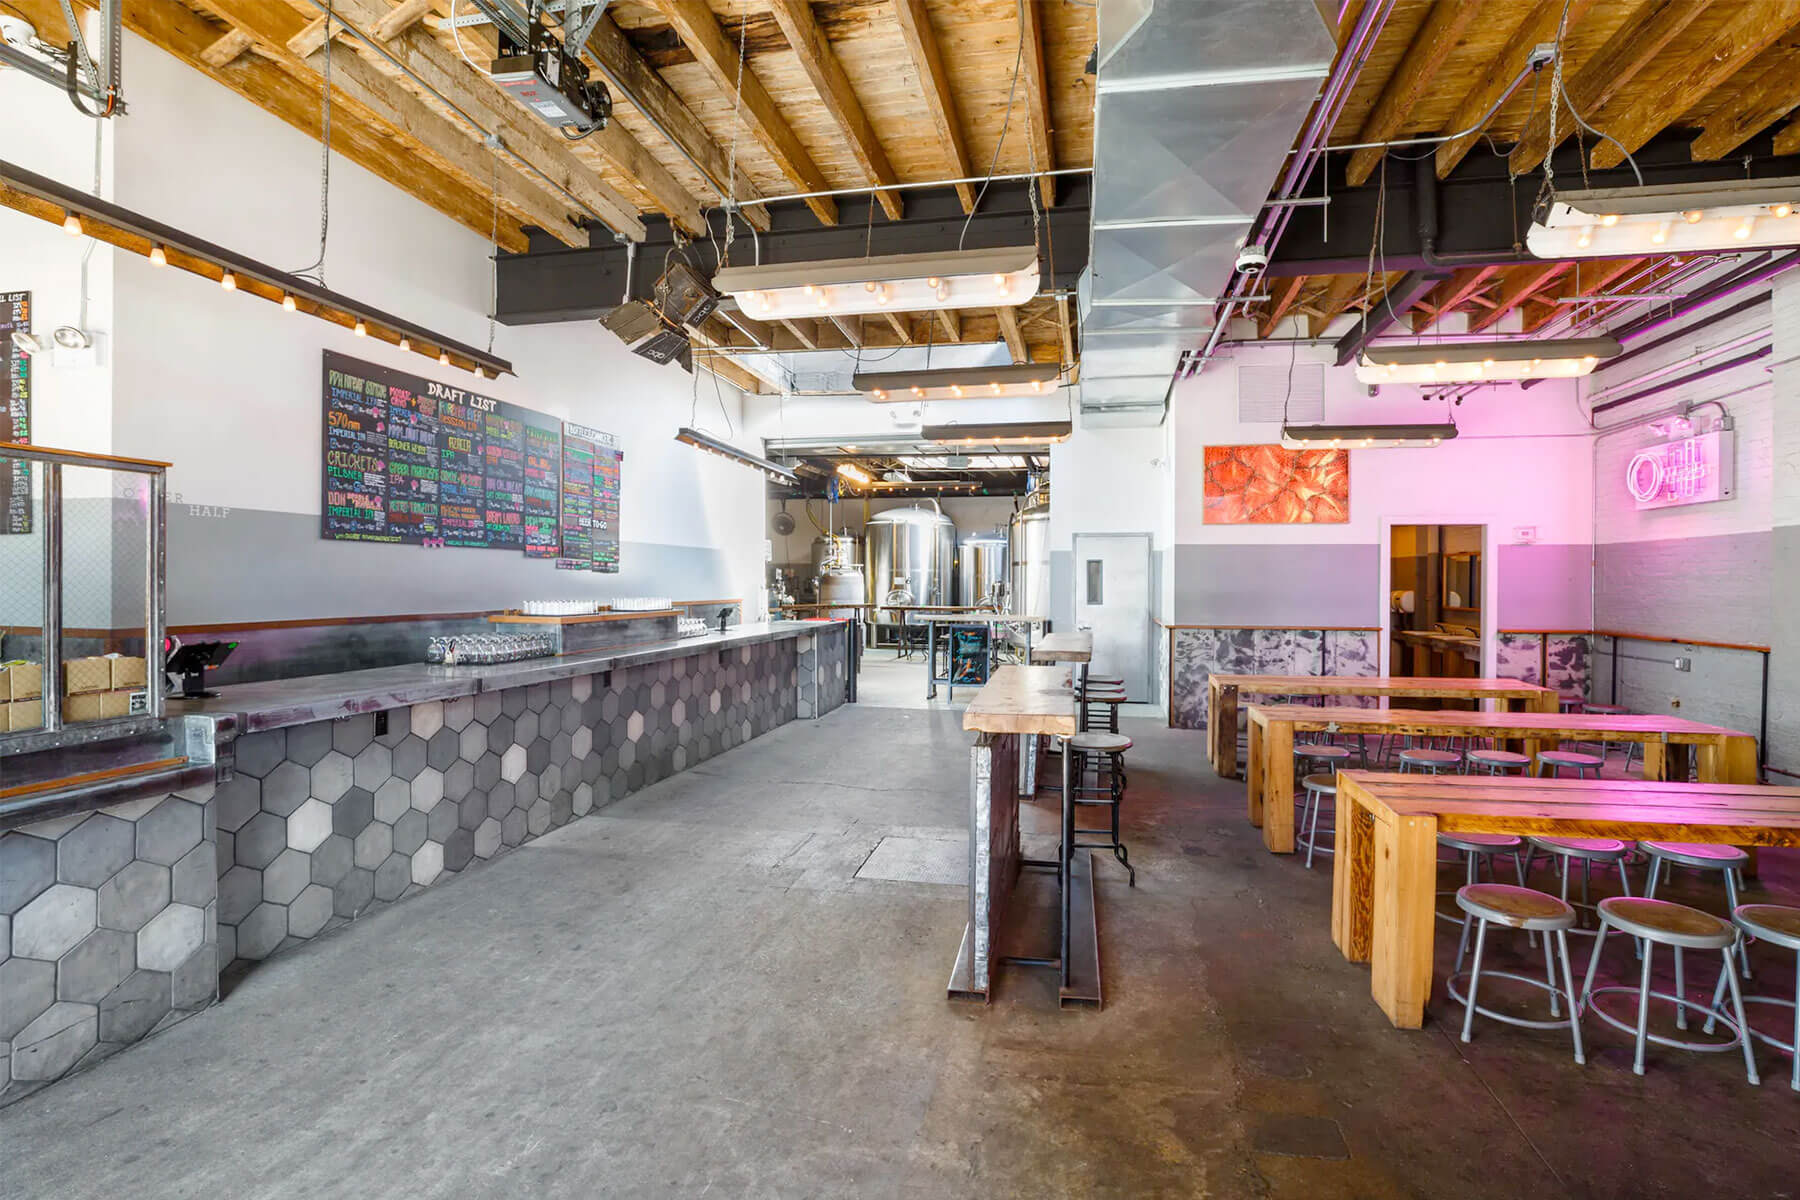 Inside the taproom at Other Half Brewing Company in Brooklyn, New York